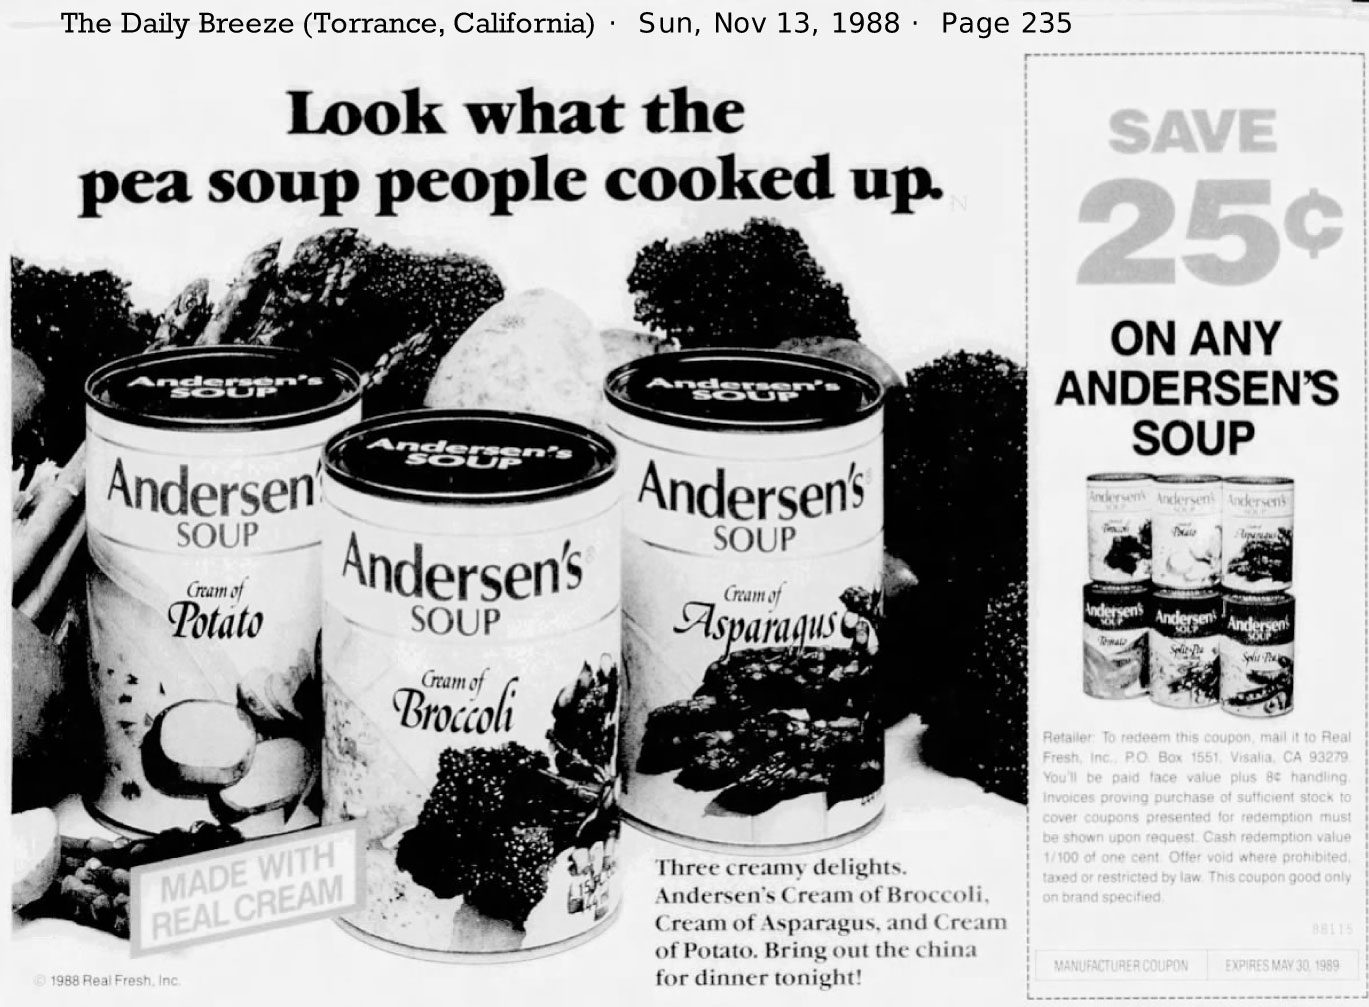 1988 advertisement for Andersen's Cream of Broccoli Soup